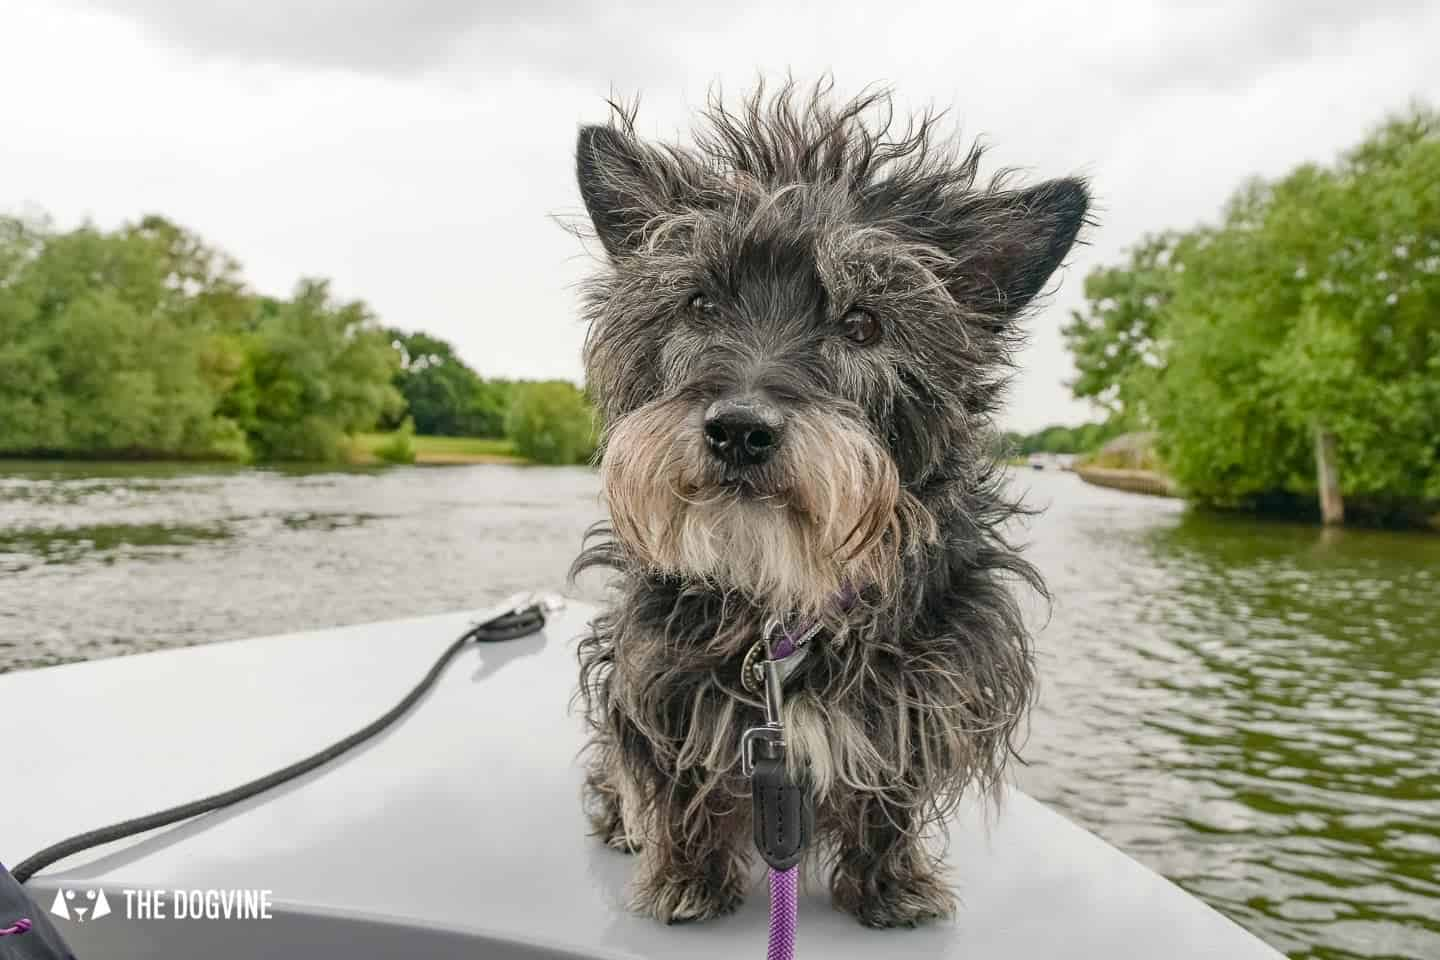 Dog-friendly Go Boat Kingston Upon Thames 9